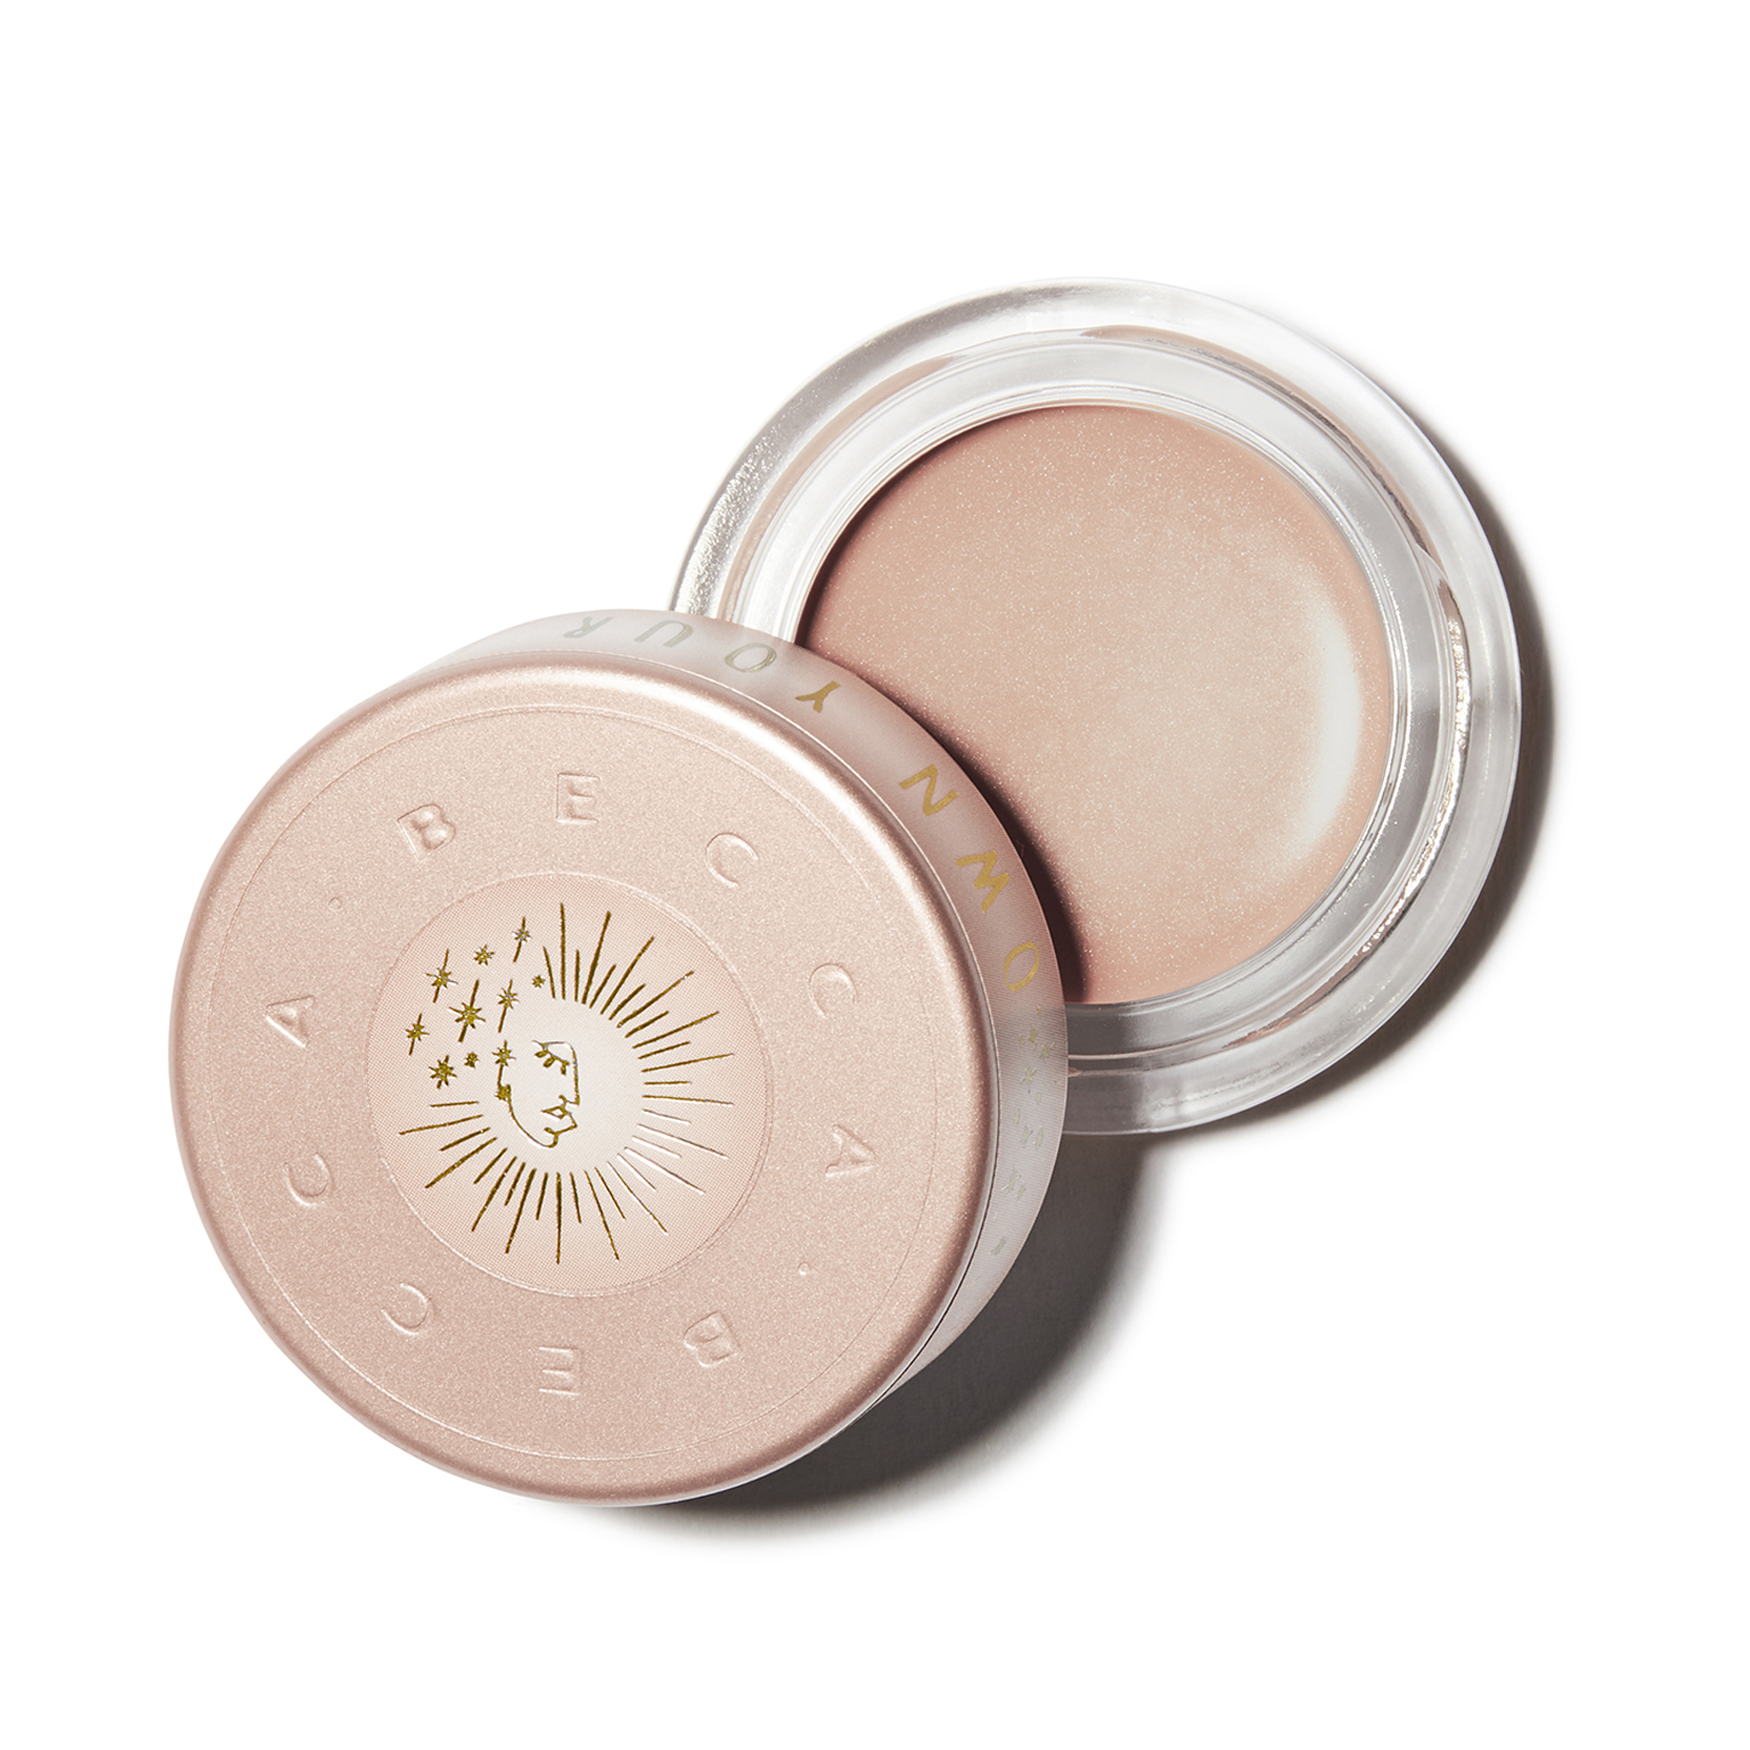 Under Eye Brightening Corrector - Limited Edition, LIGHT MEDIUM, large